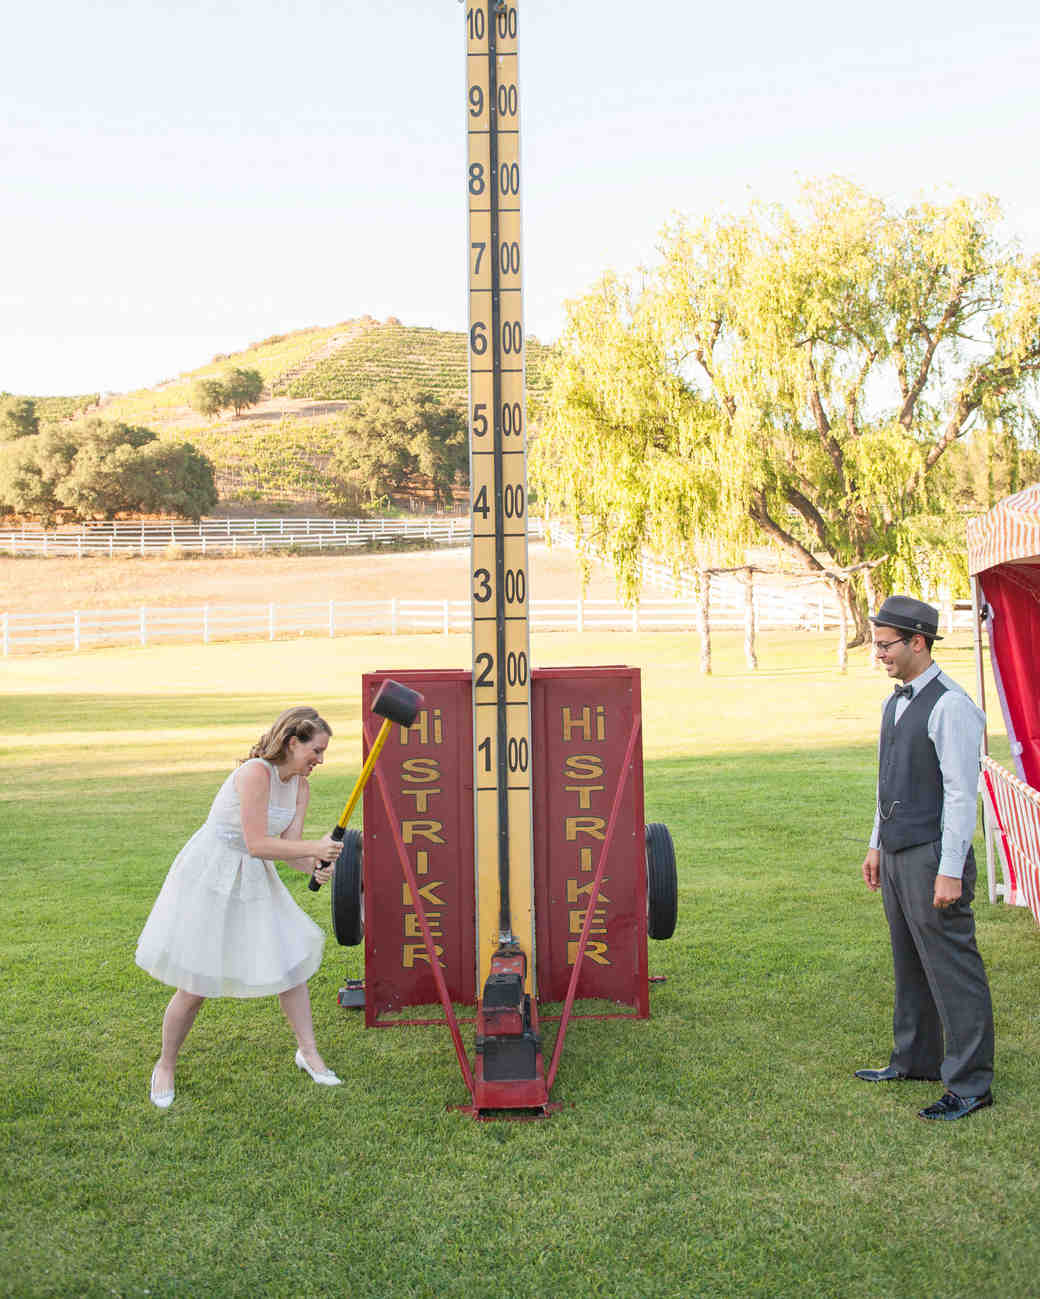 wedding games strongman bell ring